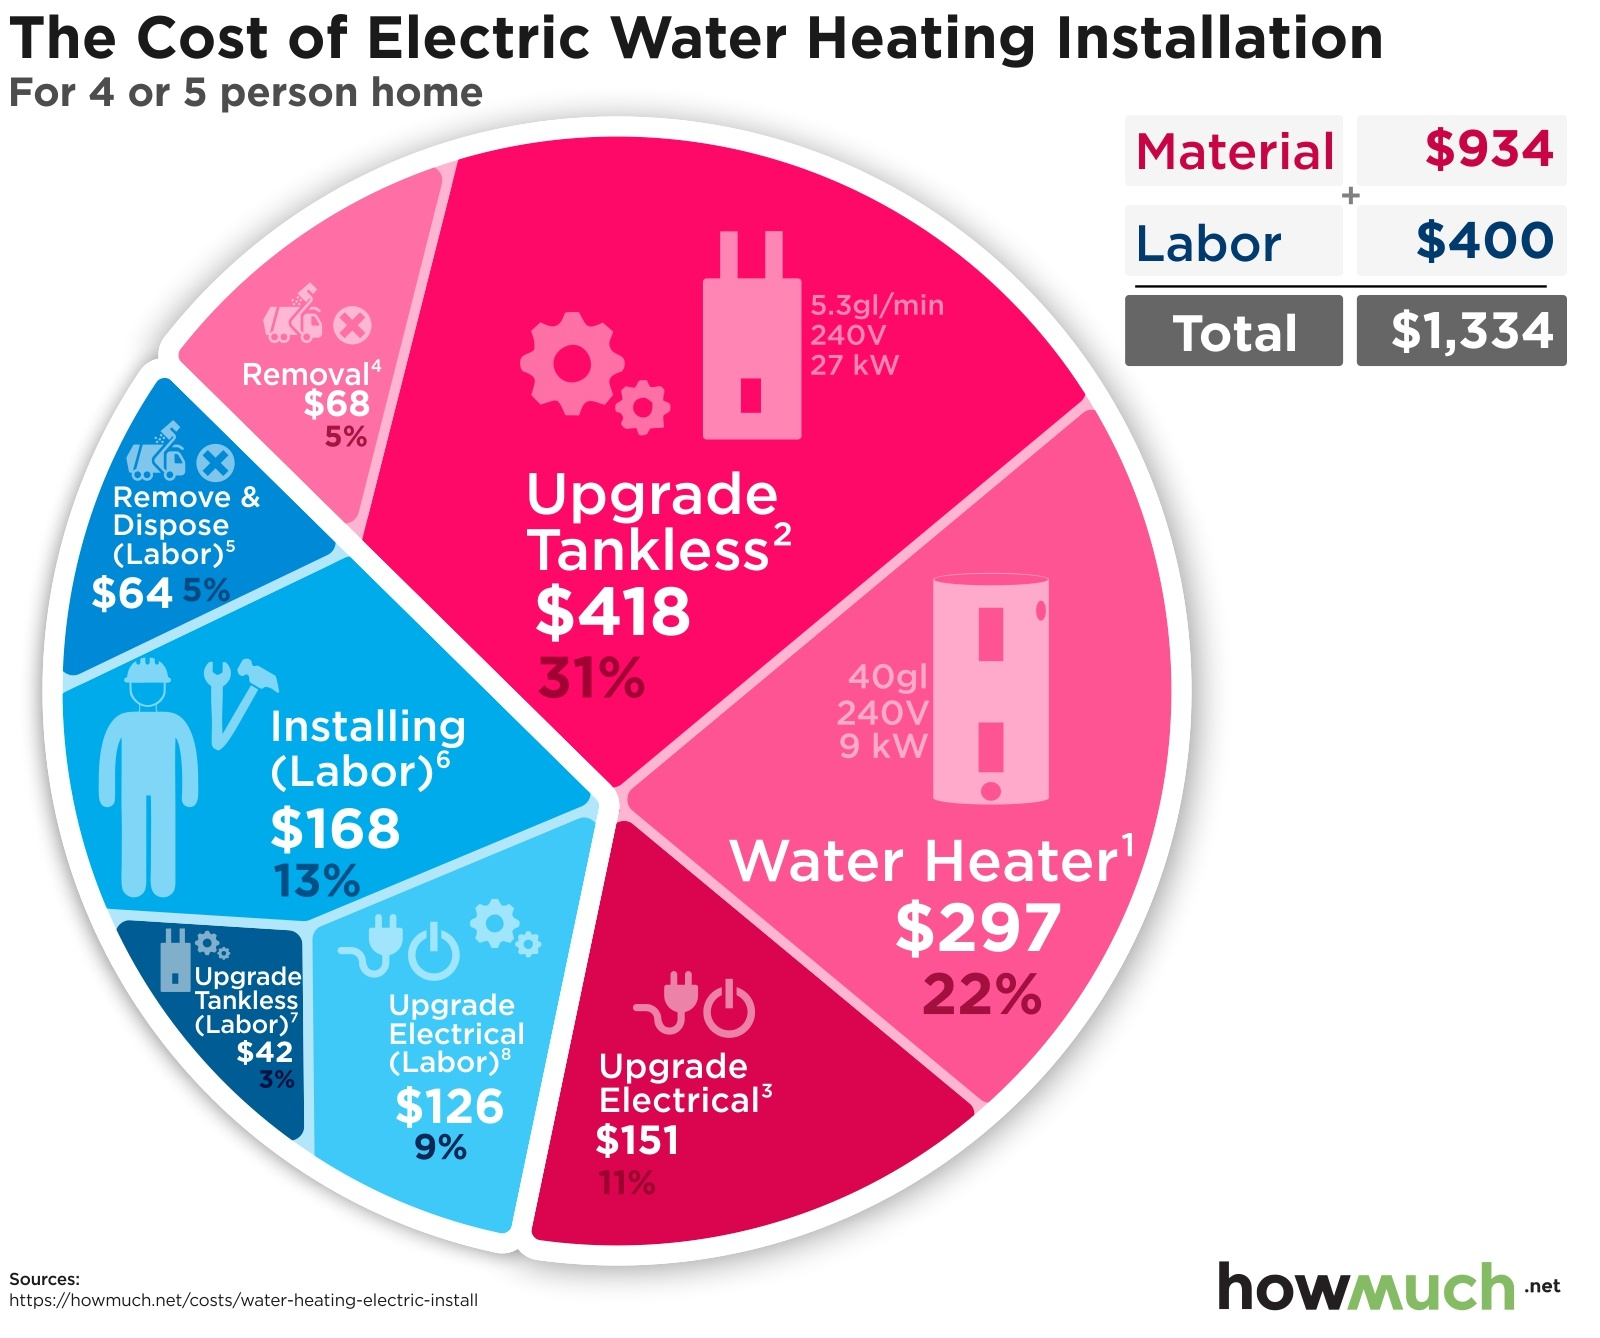 The Cost of Electric Water Heating Installation